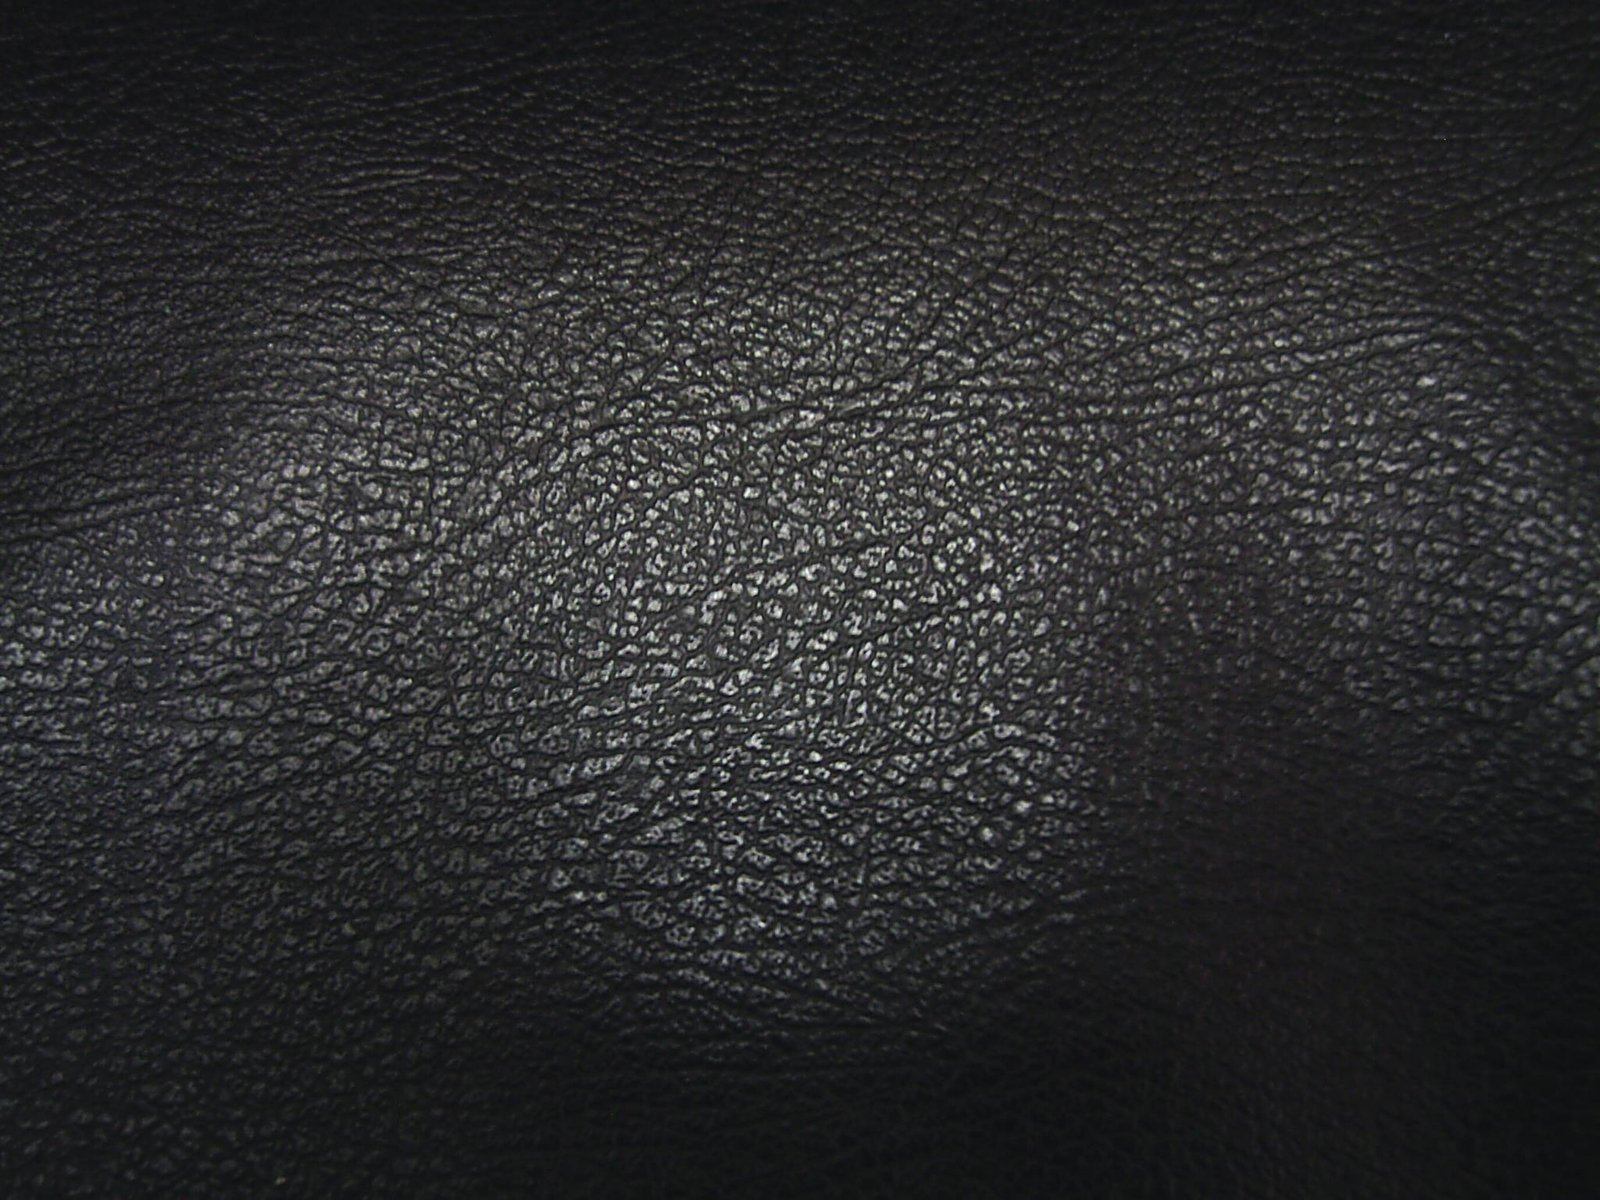 Free Leather Texture Stock Photo FreeImagescom